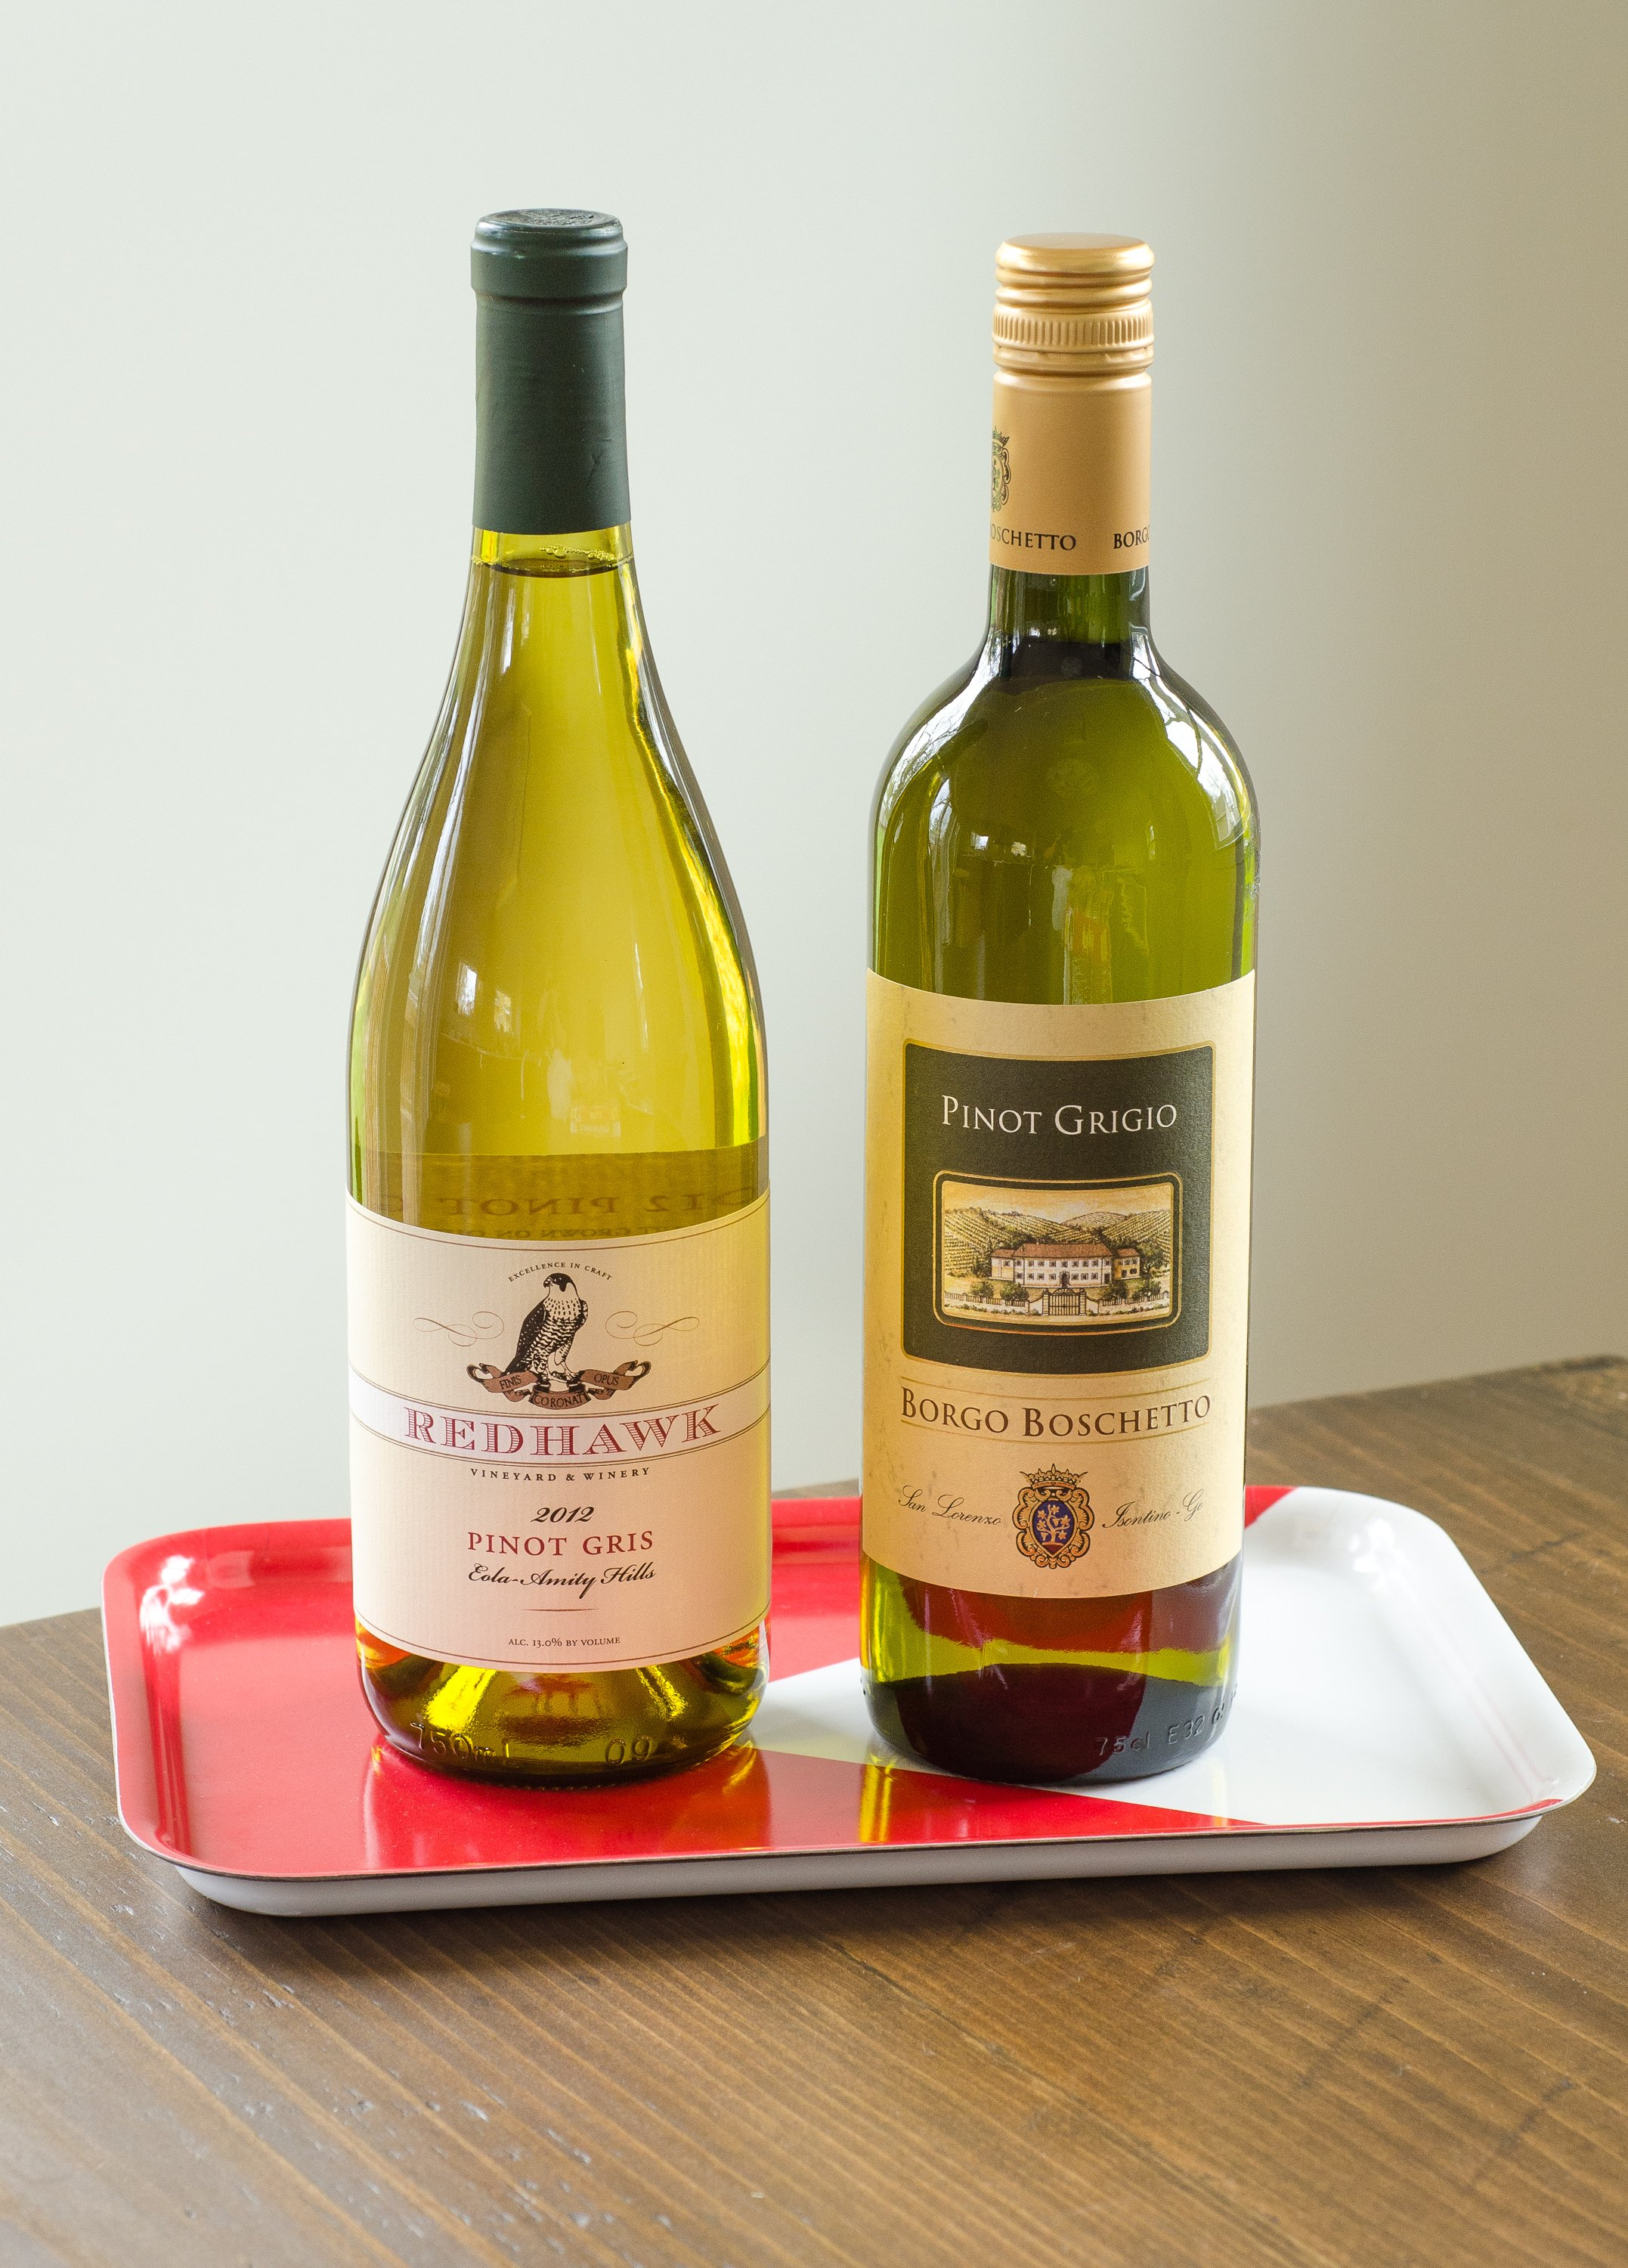 What's the Difference Between Pinot Gris and Pinot Grigio